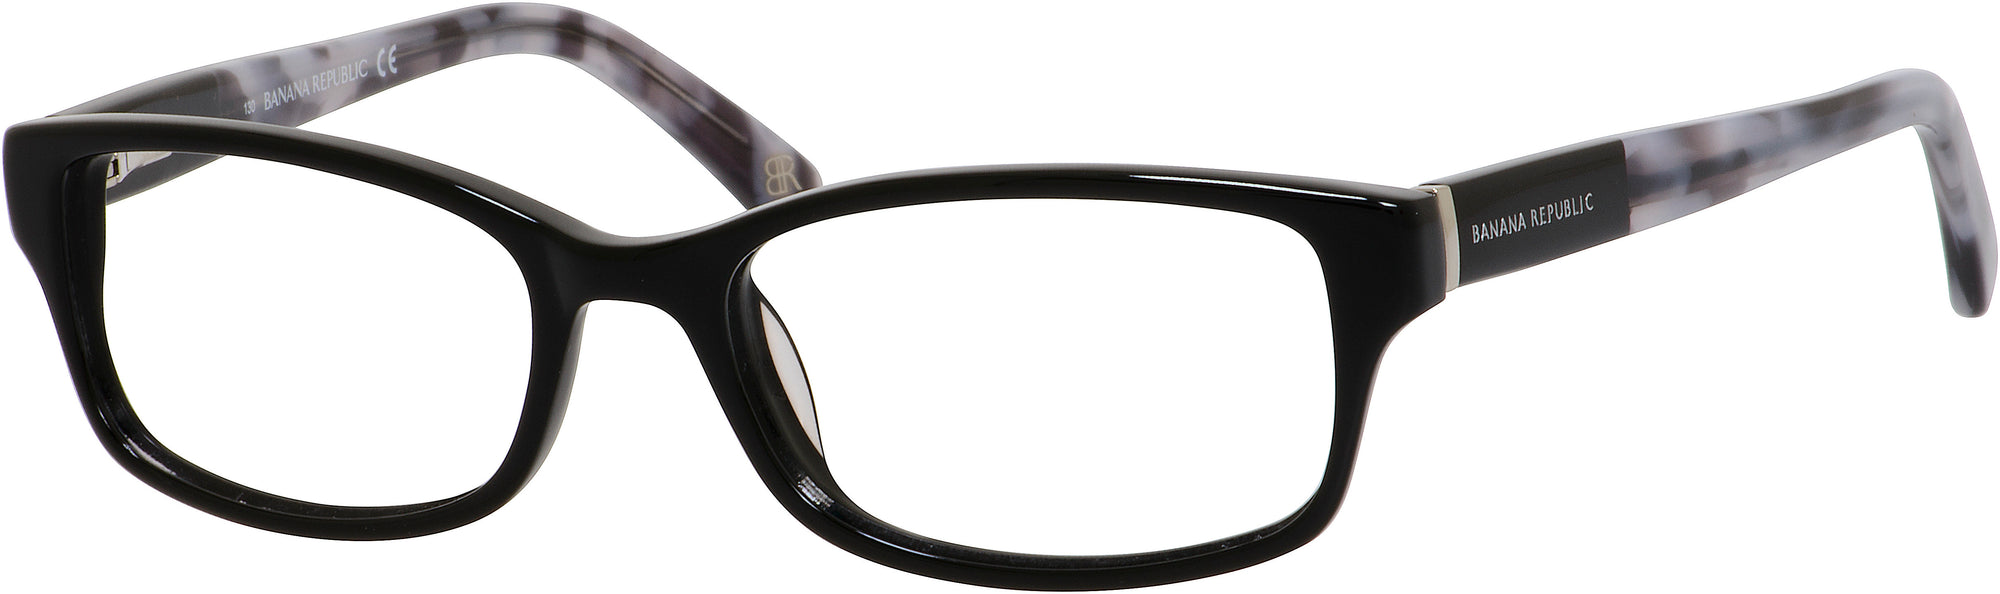 Banana Republic Cali Rectangular Sunglasses CALI-0807  Black (00 Demo Lens)